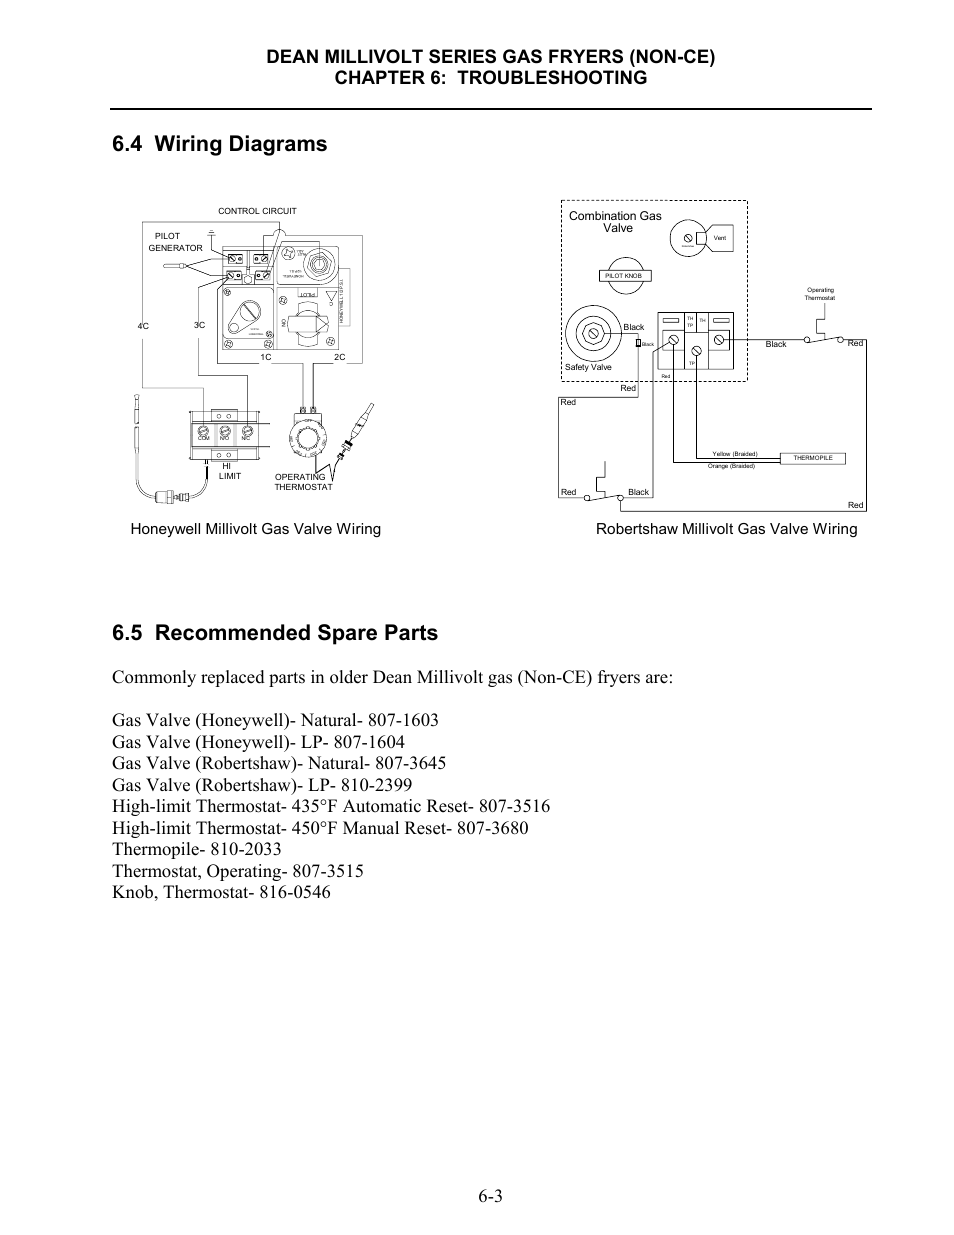 medium resolution of 4 wiring diagrams 5 recommended spare parts honeywell millivolt lab gas valve diagram 4